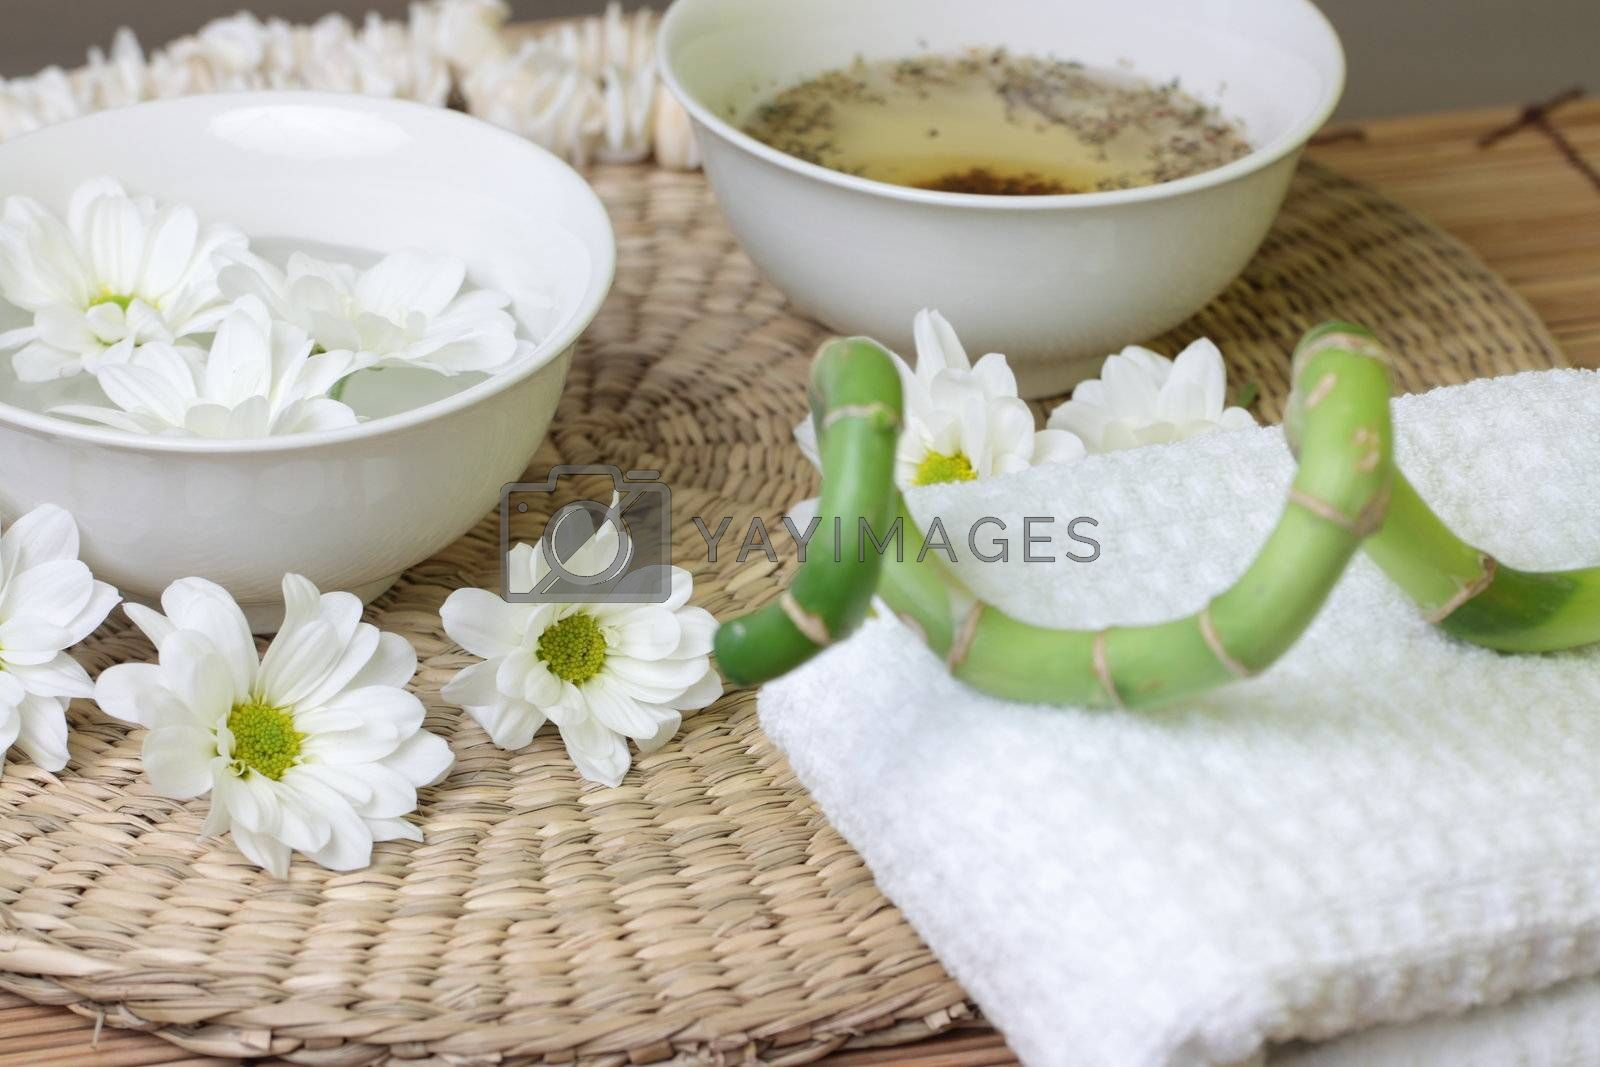 Spa design with herb and daisy